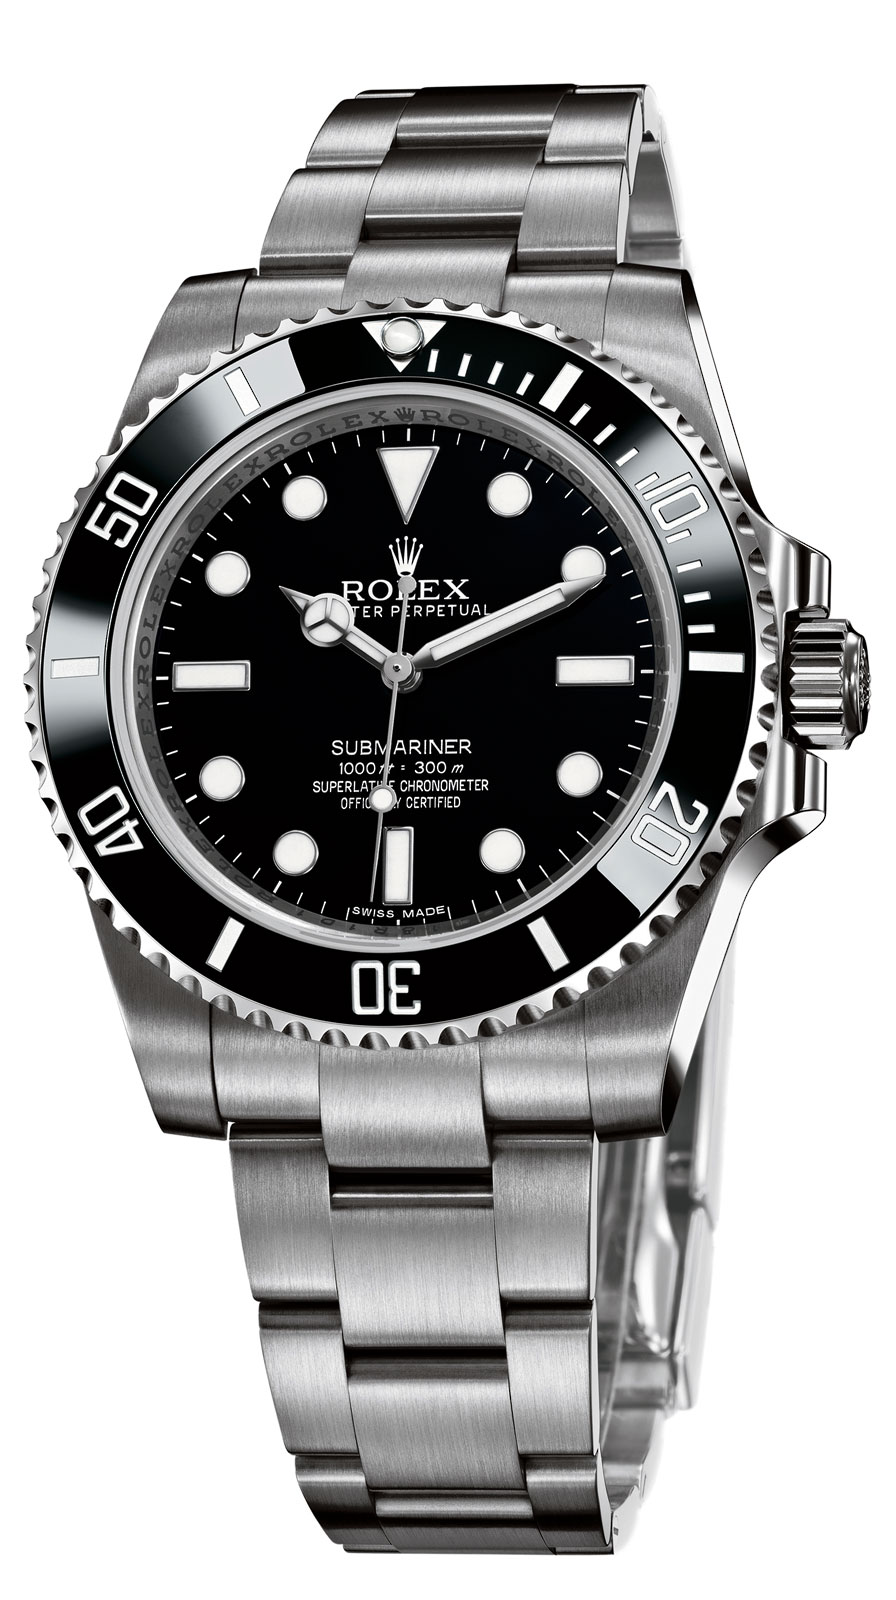 100percent rolex my rolex 114060 submariner review for Submarine watches